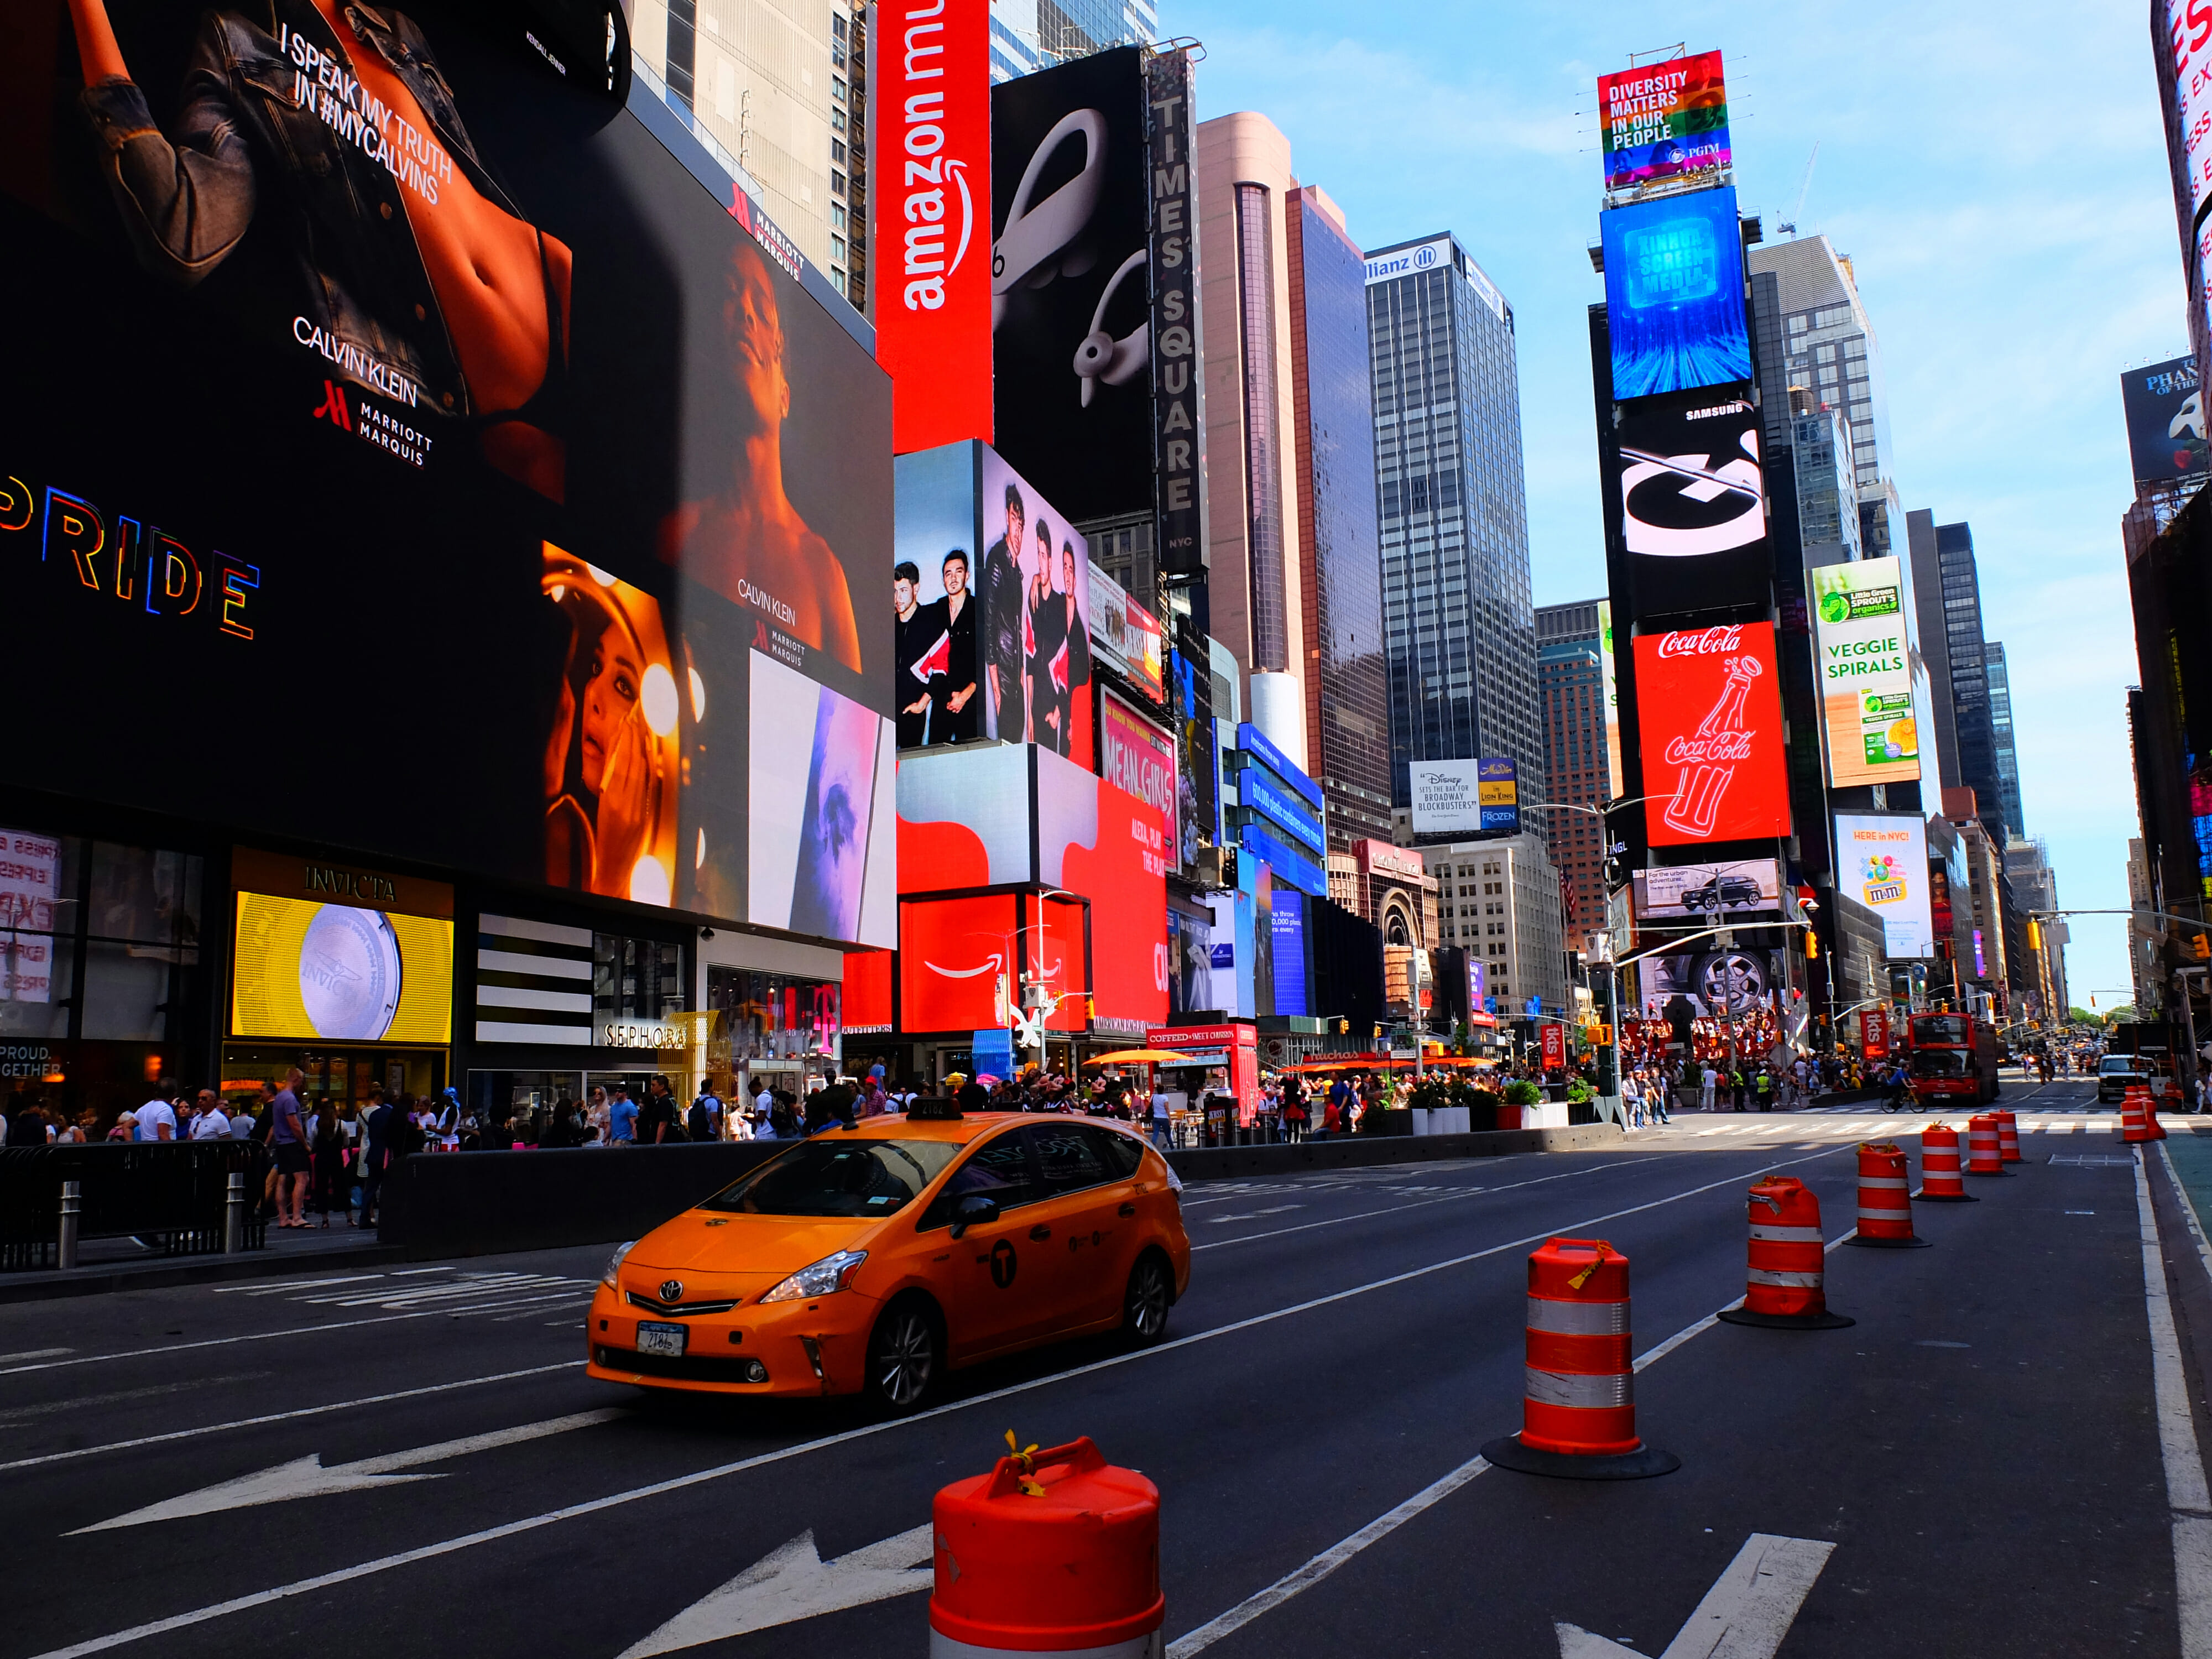 Times Square in New York City High Quality Wallpaper